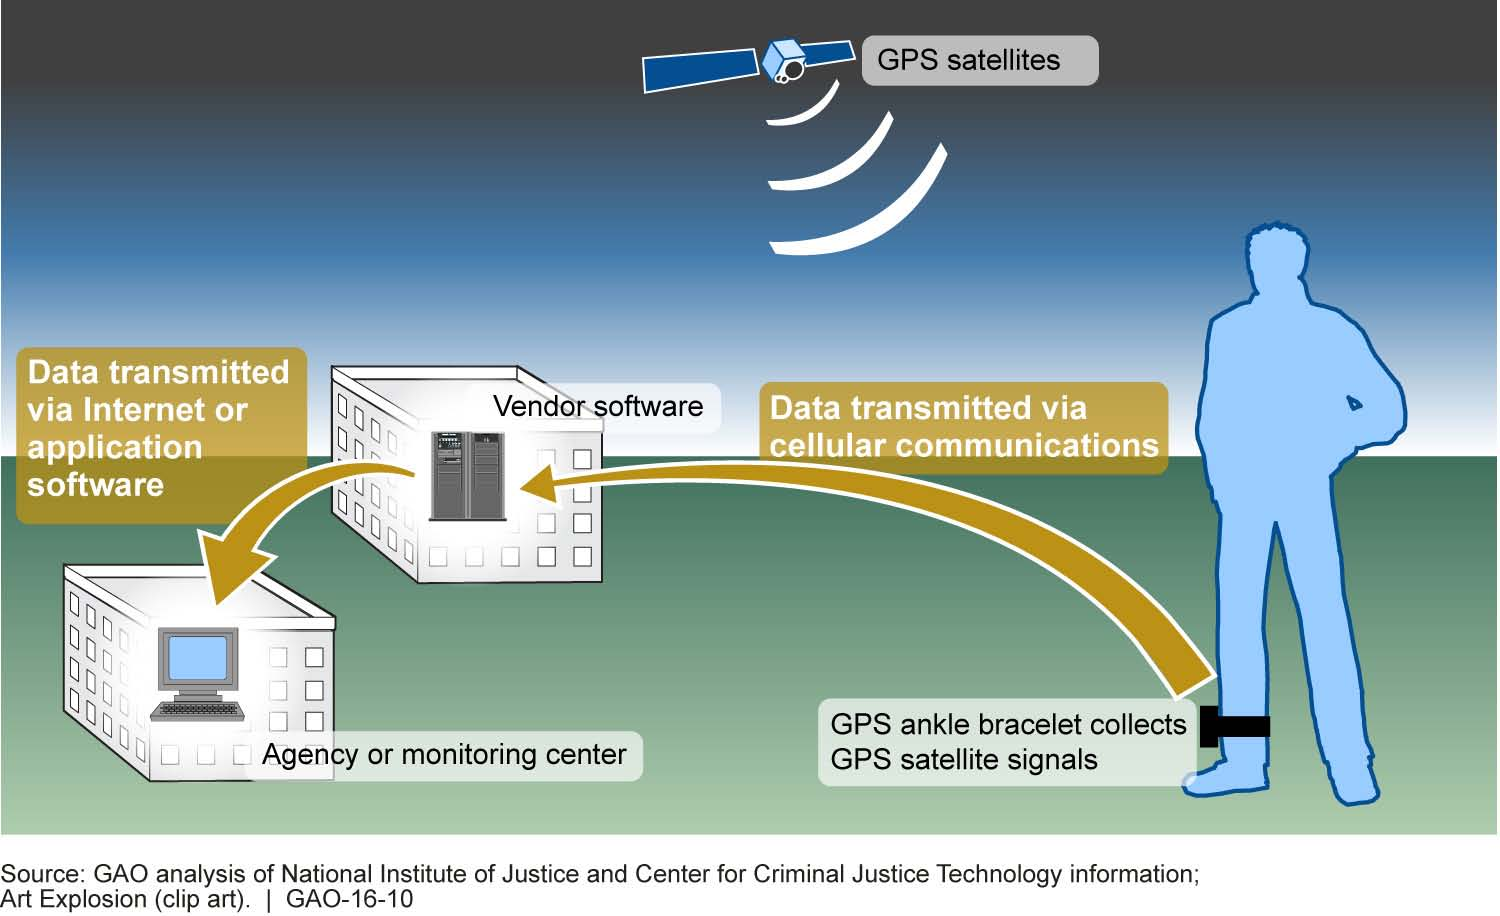 Offender Monitoring Solution Improves Efficiencies and Cuts Costs